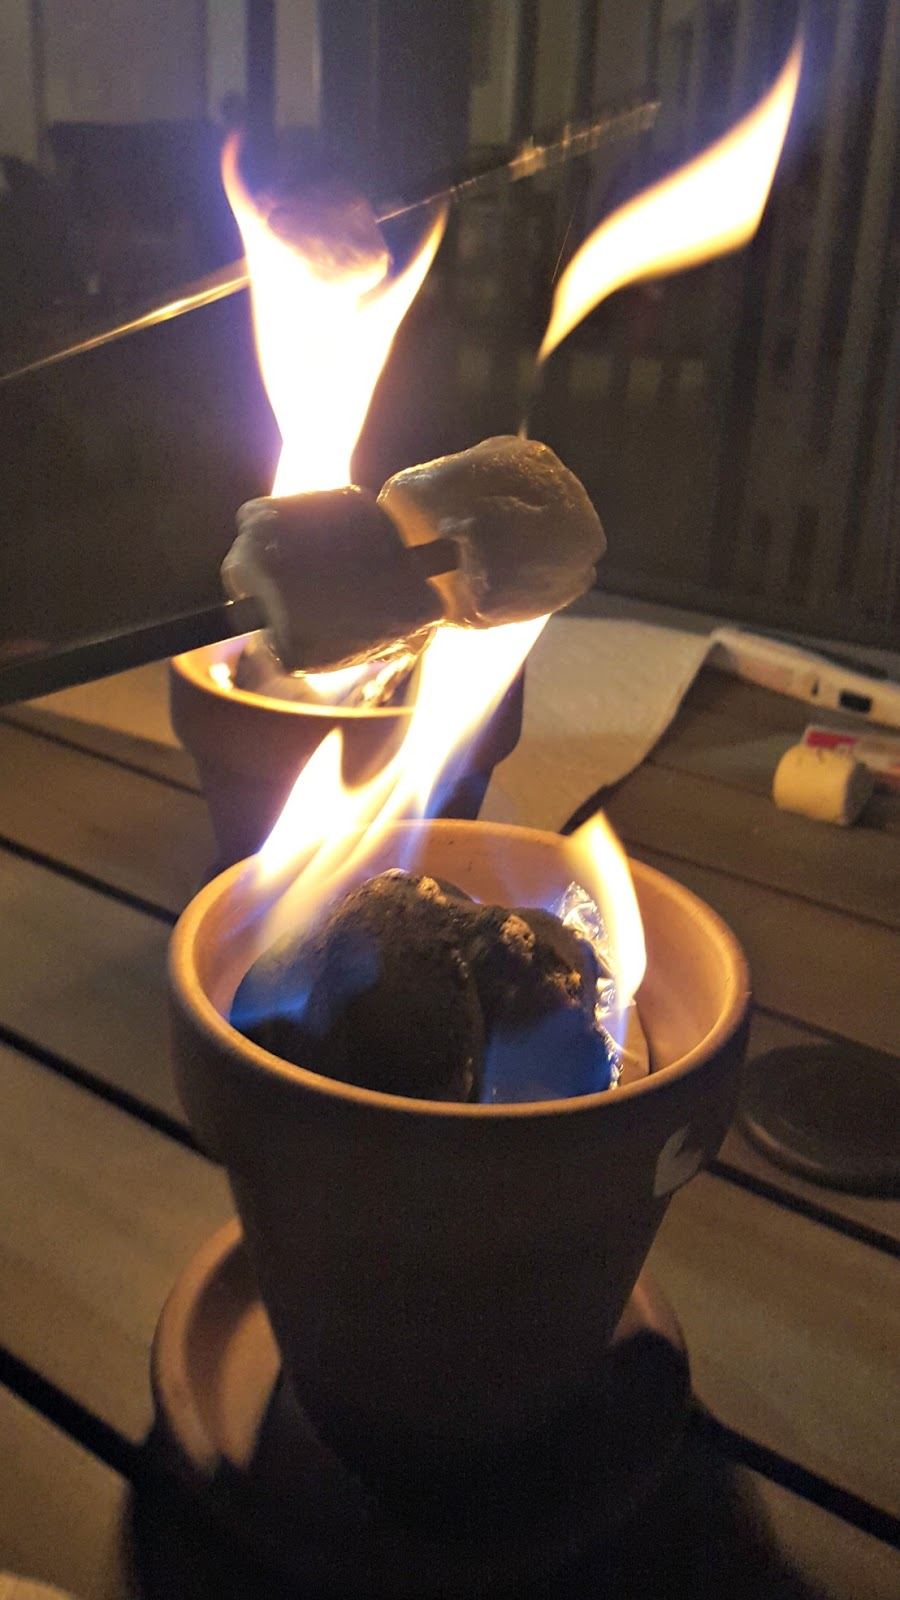 Date night smores with firepots enduring all things i decided to name the smores pots firepots like a fire pit but a pot instead dont you think it fits publicscrutiny Gallery